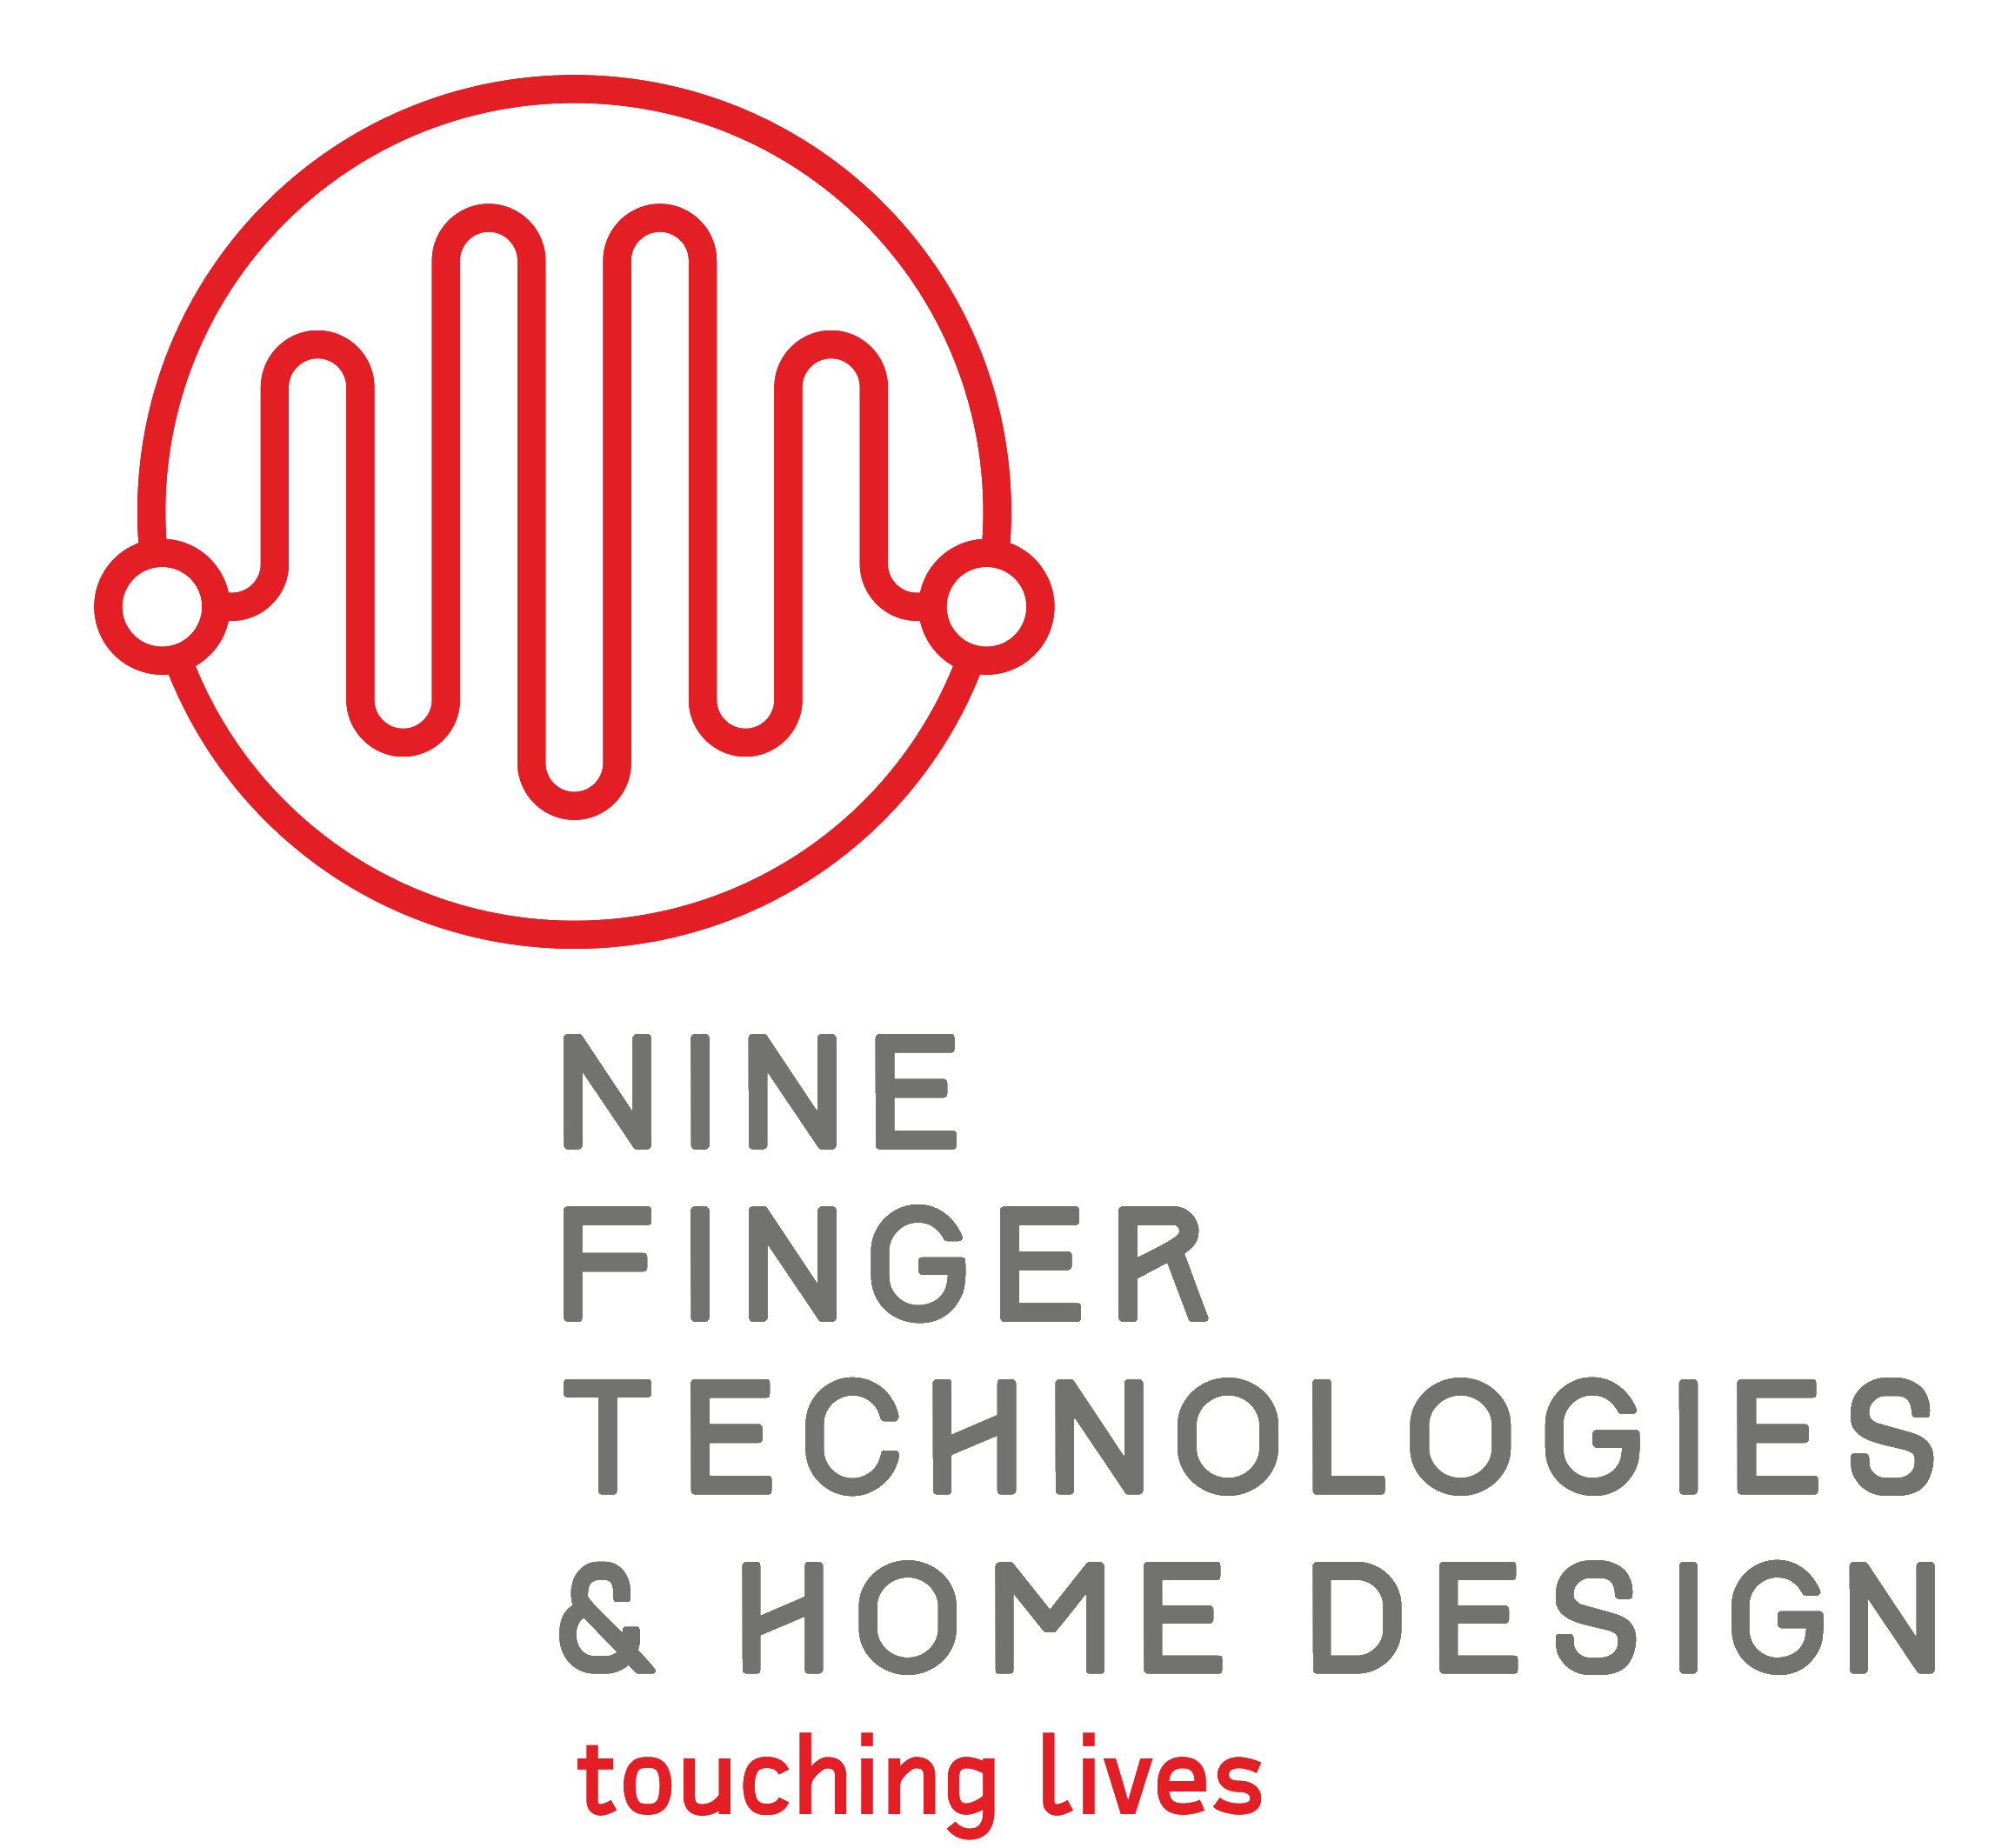 Nine Finger Technologies & Home Design